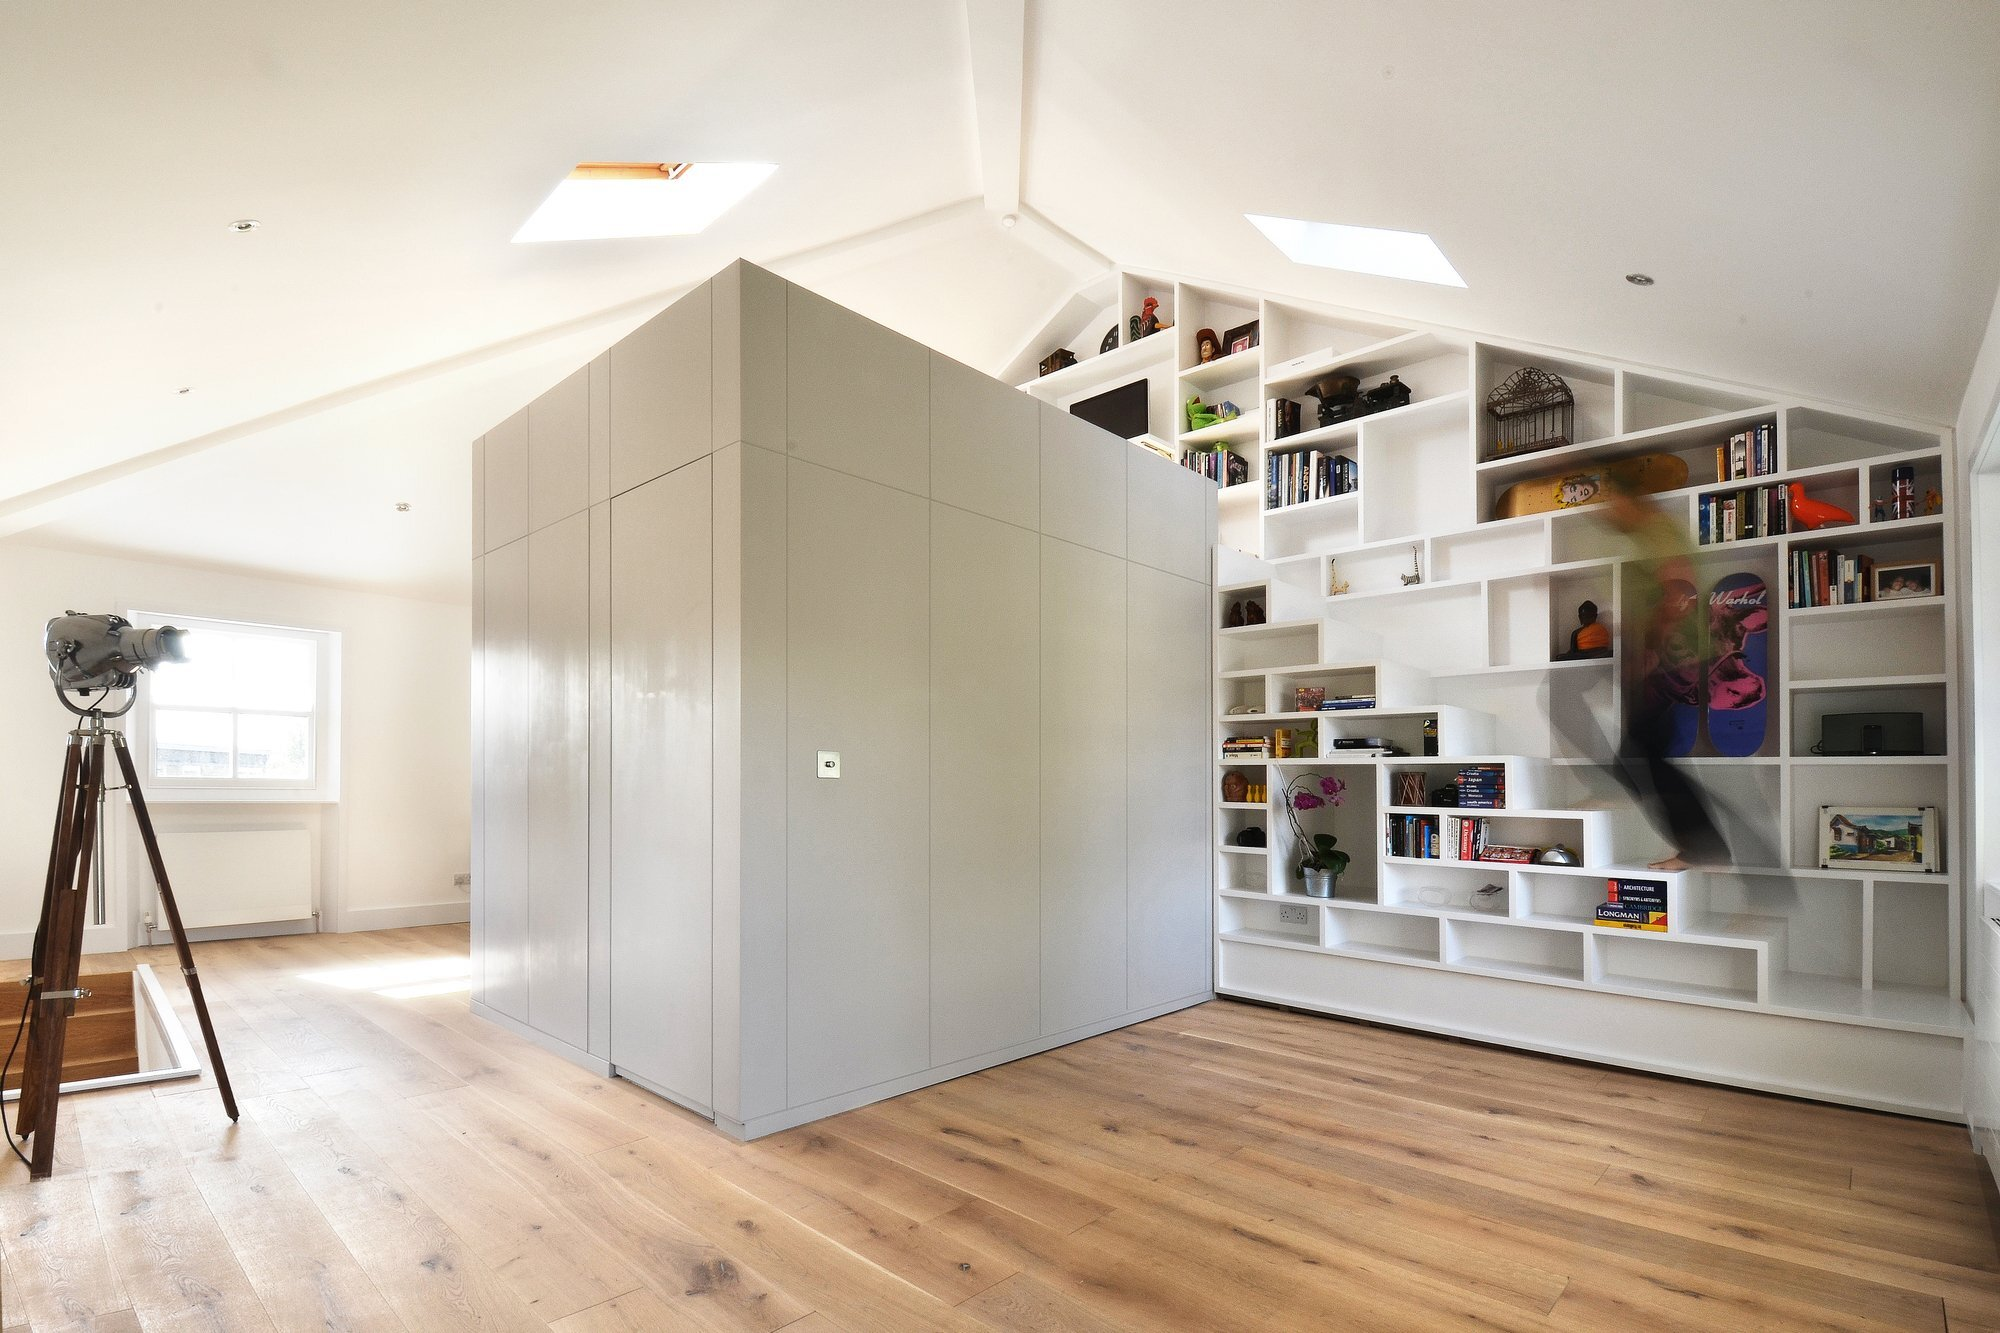 Loft Space - Craft Design - London - Camden - Tiny Apartment - Staircase - Humble Homes